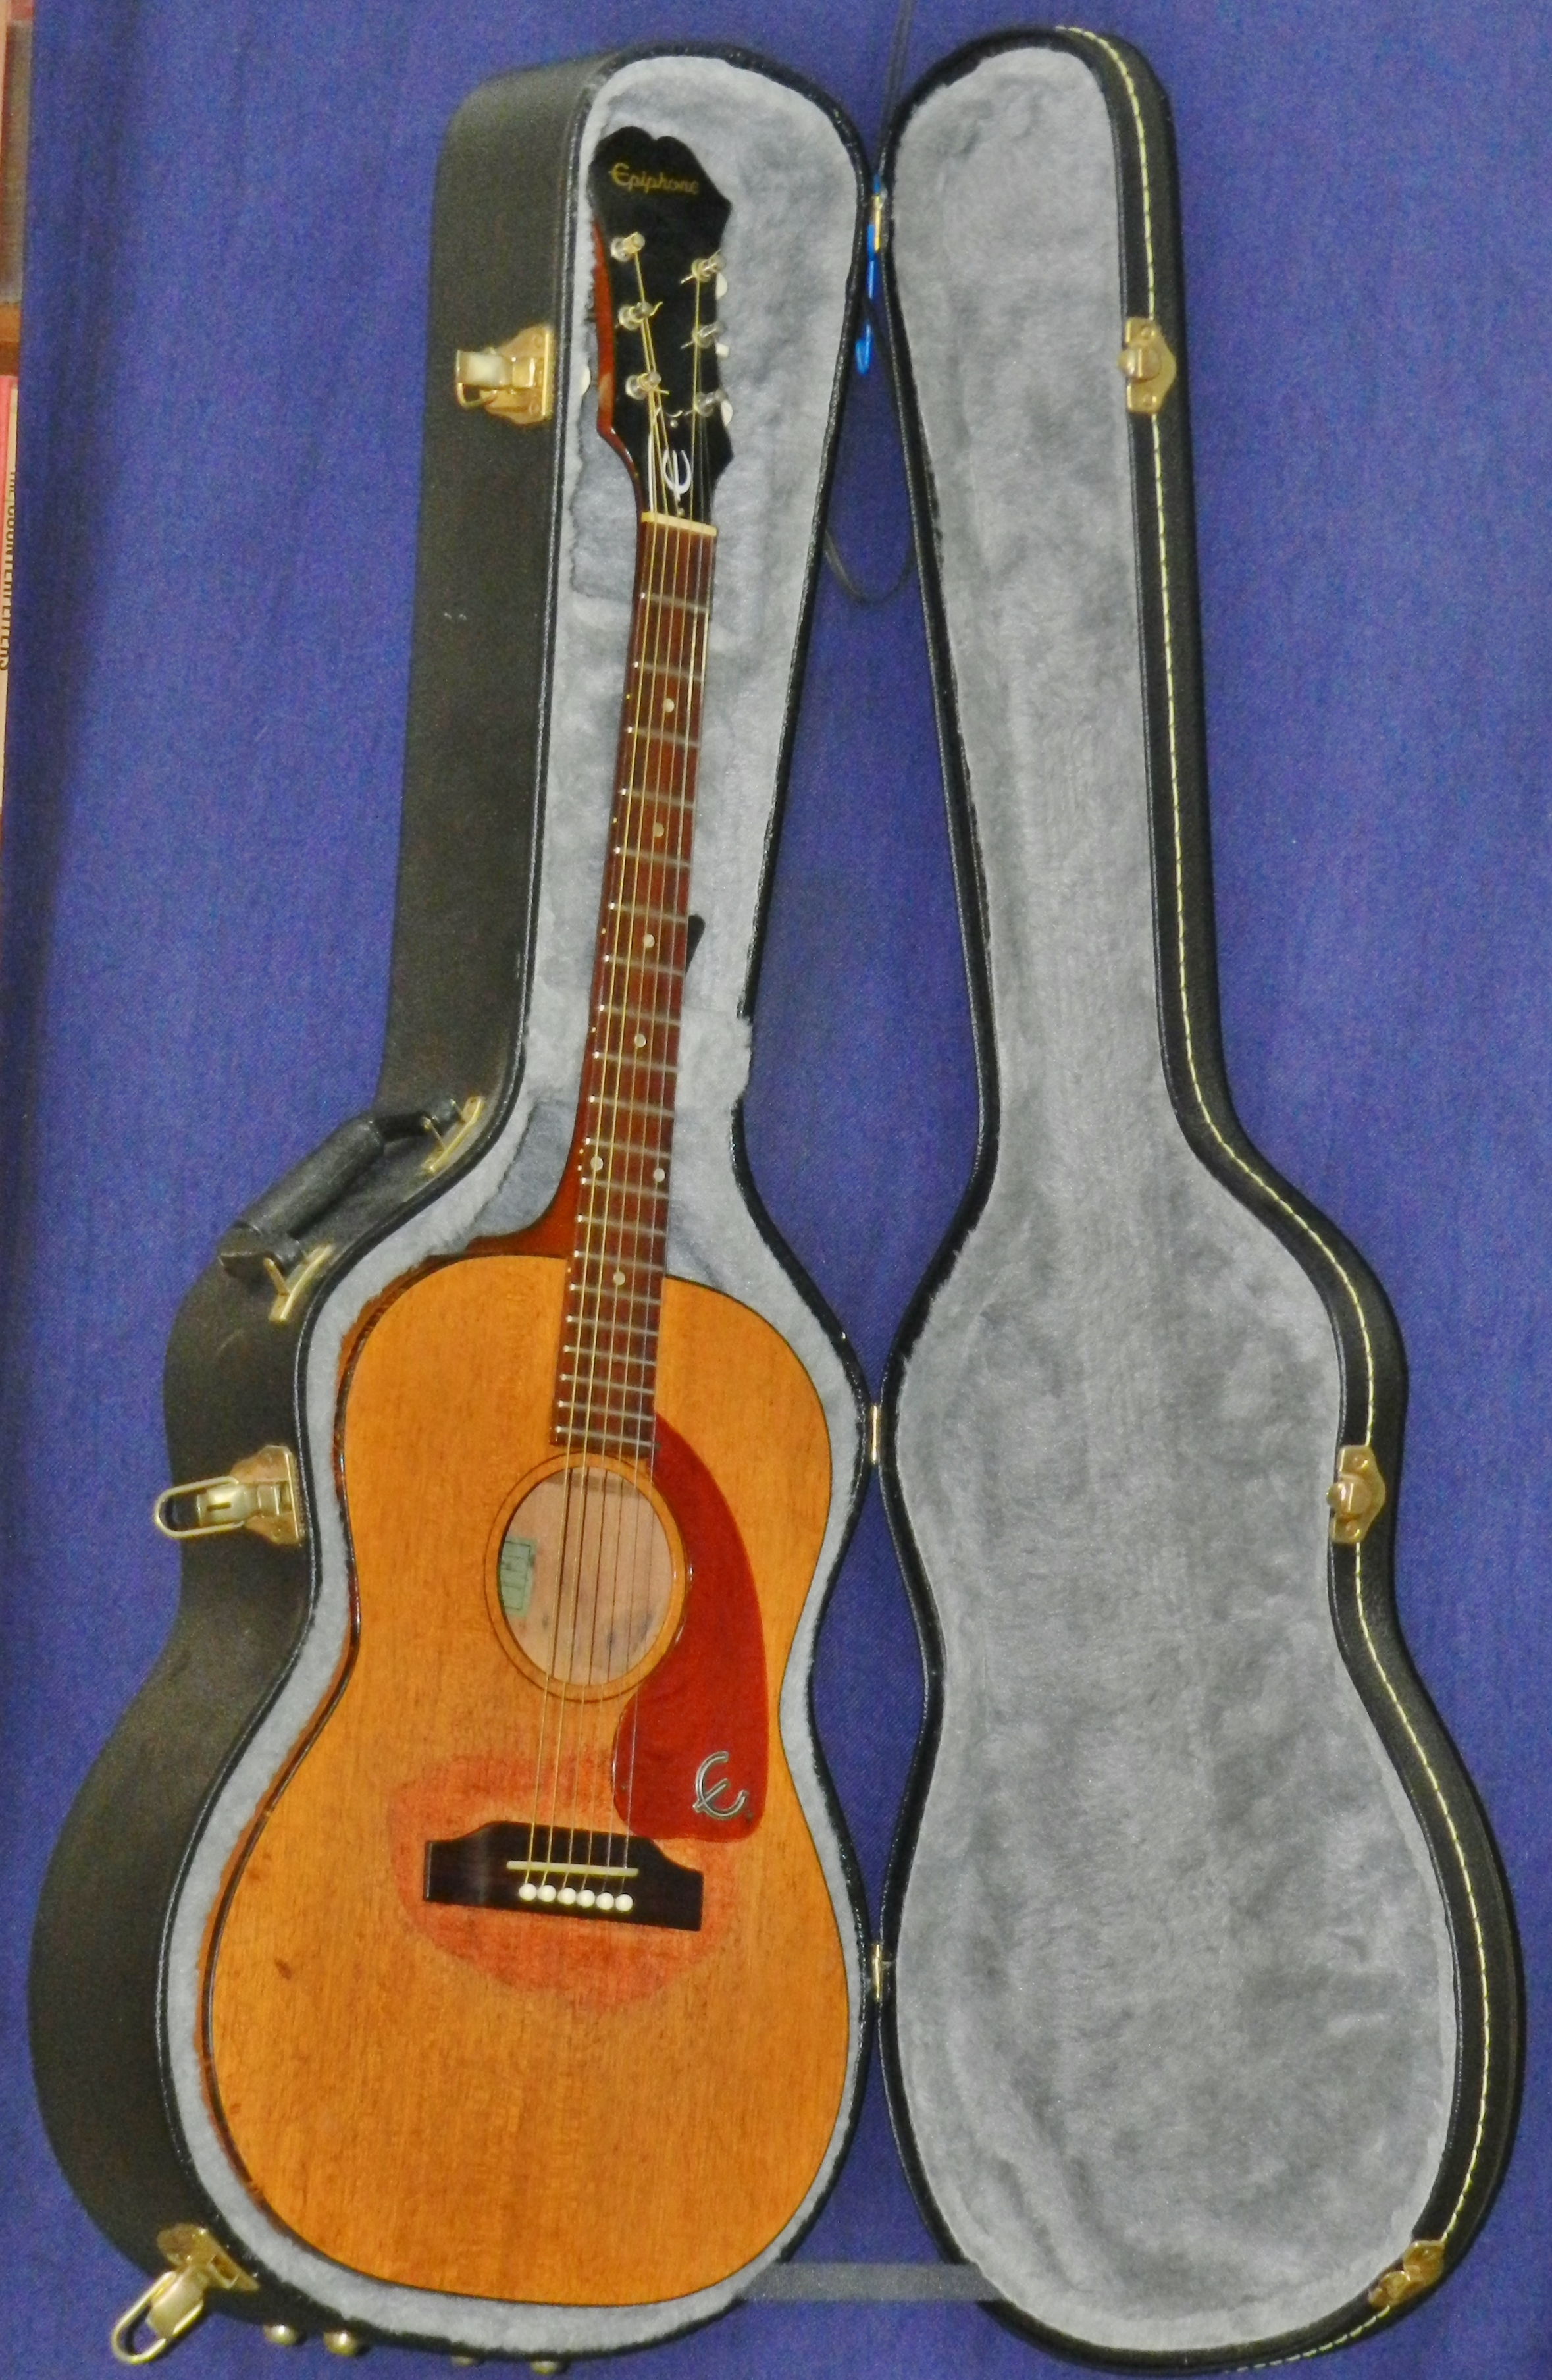 a6be5bddd0 1966 Gibson/Epiphone FT-30